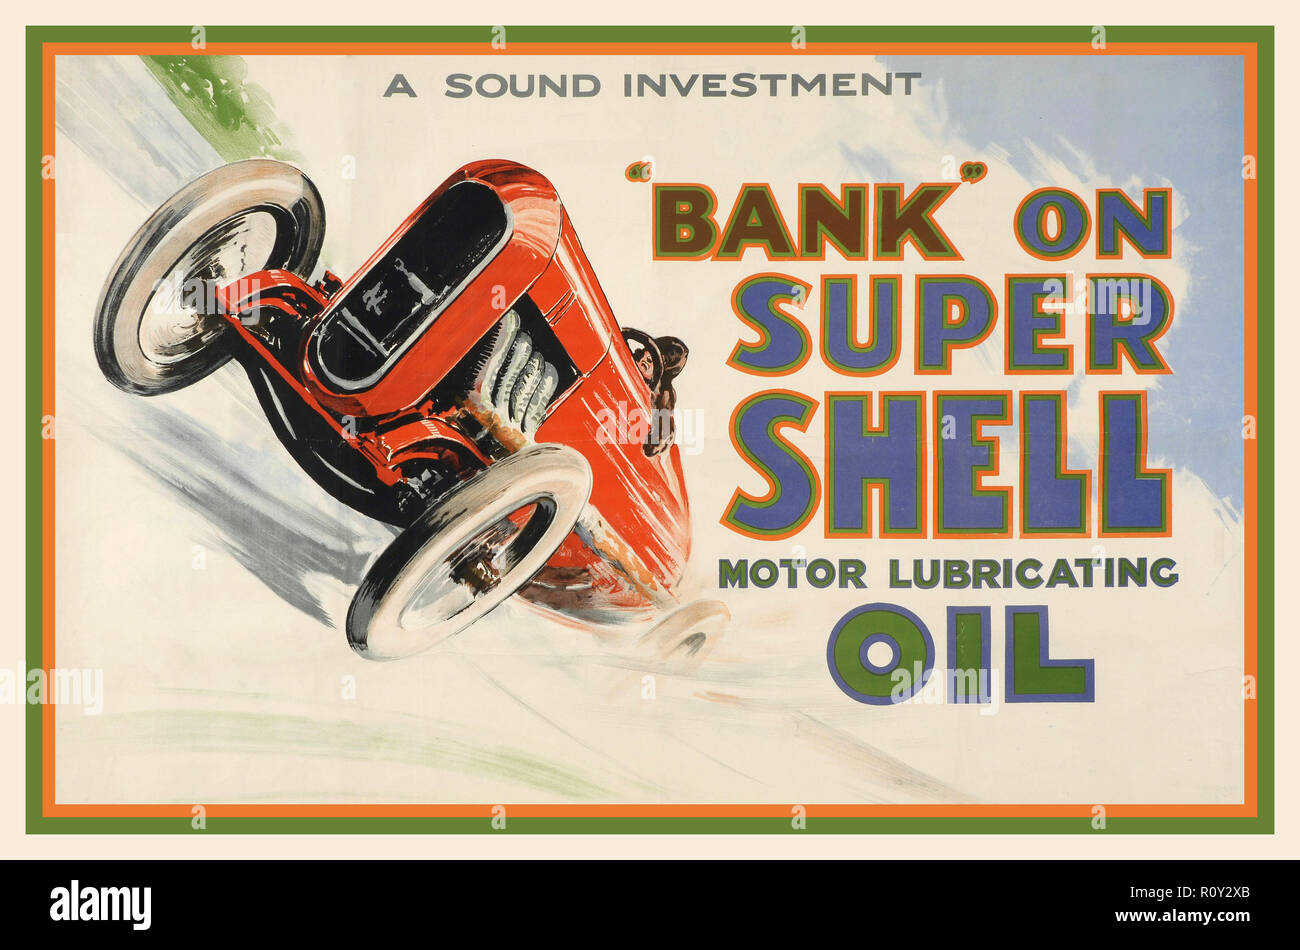 SHELL OIL 1924 vintage advertisement by artist Norman Keene was an early poster promoting use of Shell oil during the glamorous 'Roaring Twenties' era of motor racing. - Stock Image